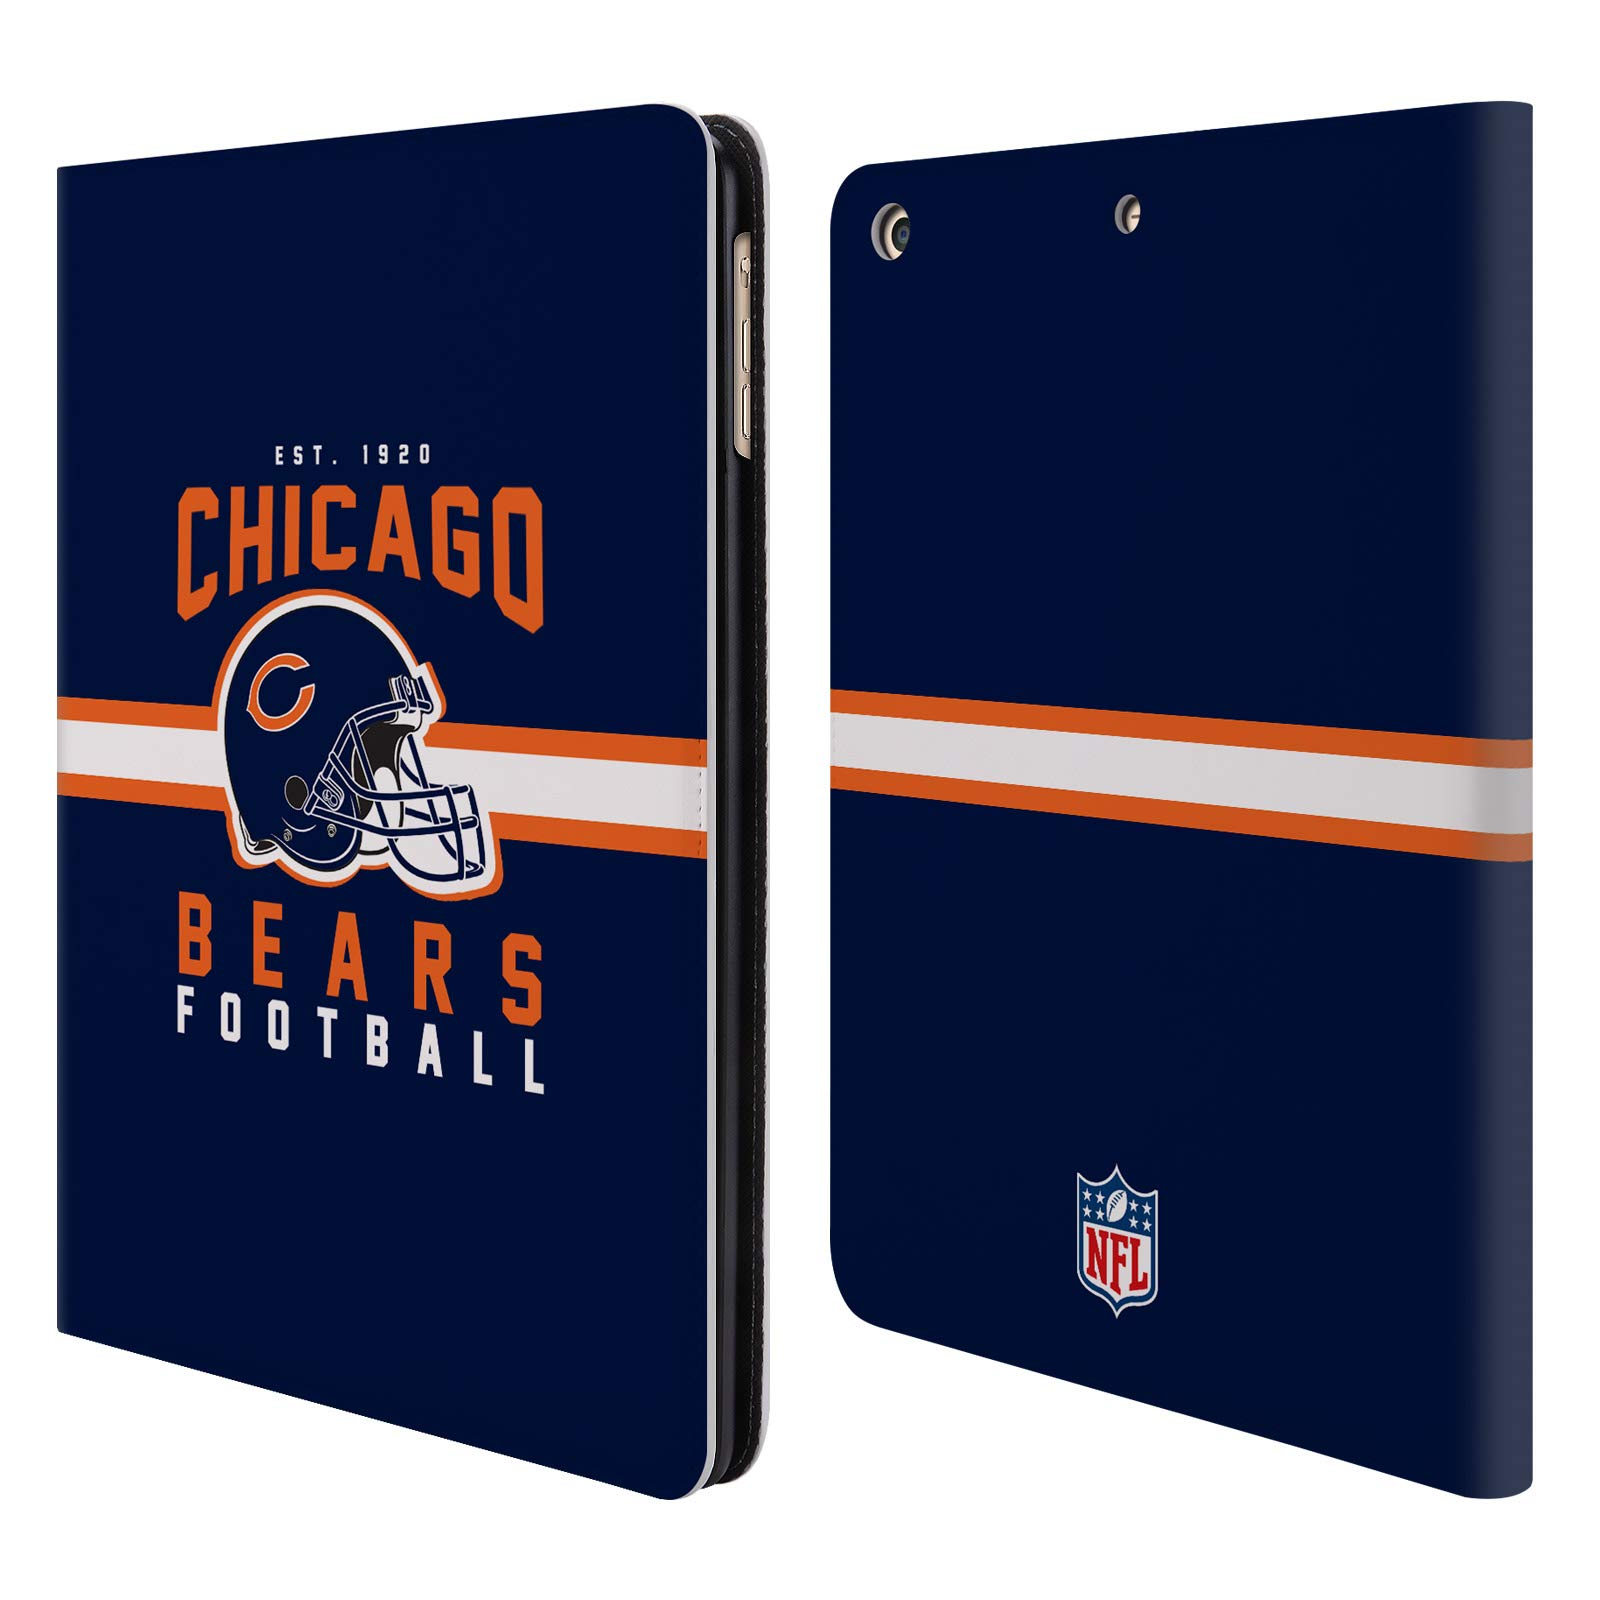 Official NFL Helmet Typography 2018/19 Chicago Bears Leather Book Wallet Case Cover for iPad Air (2013)